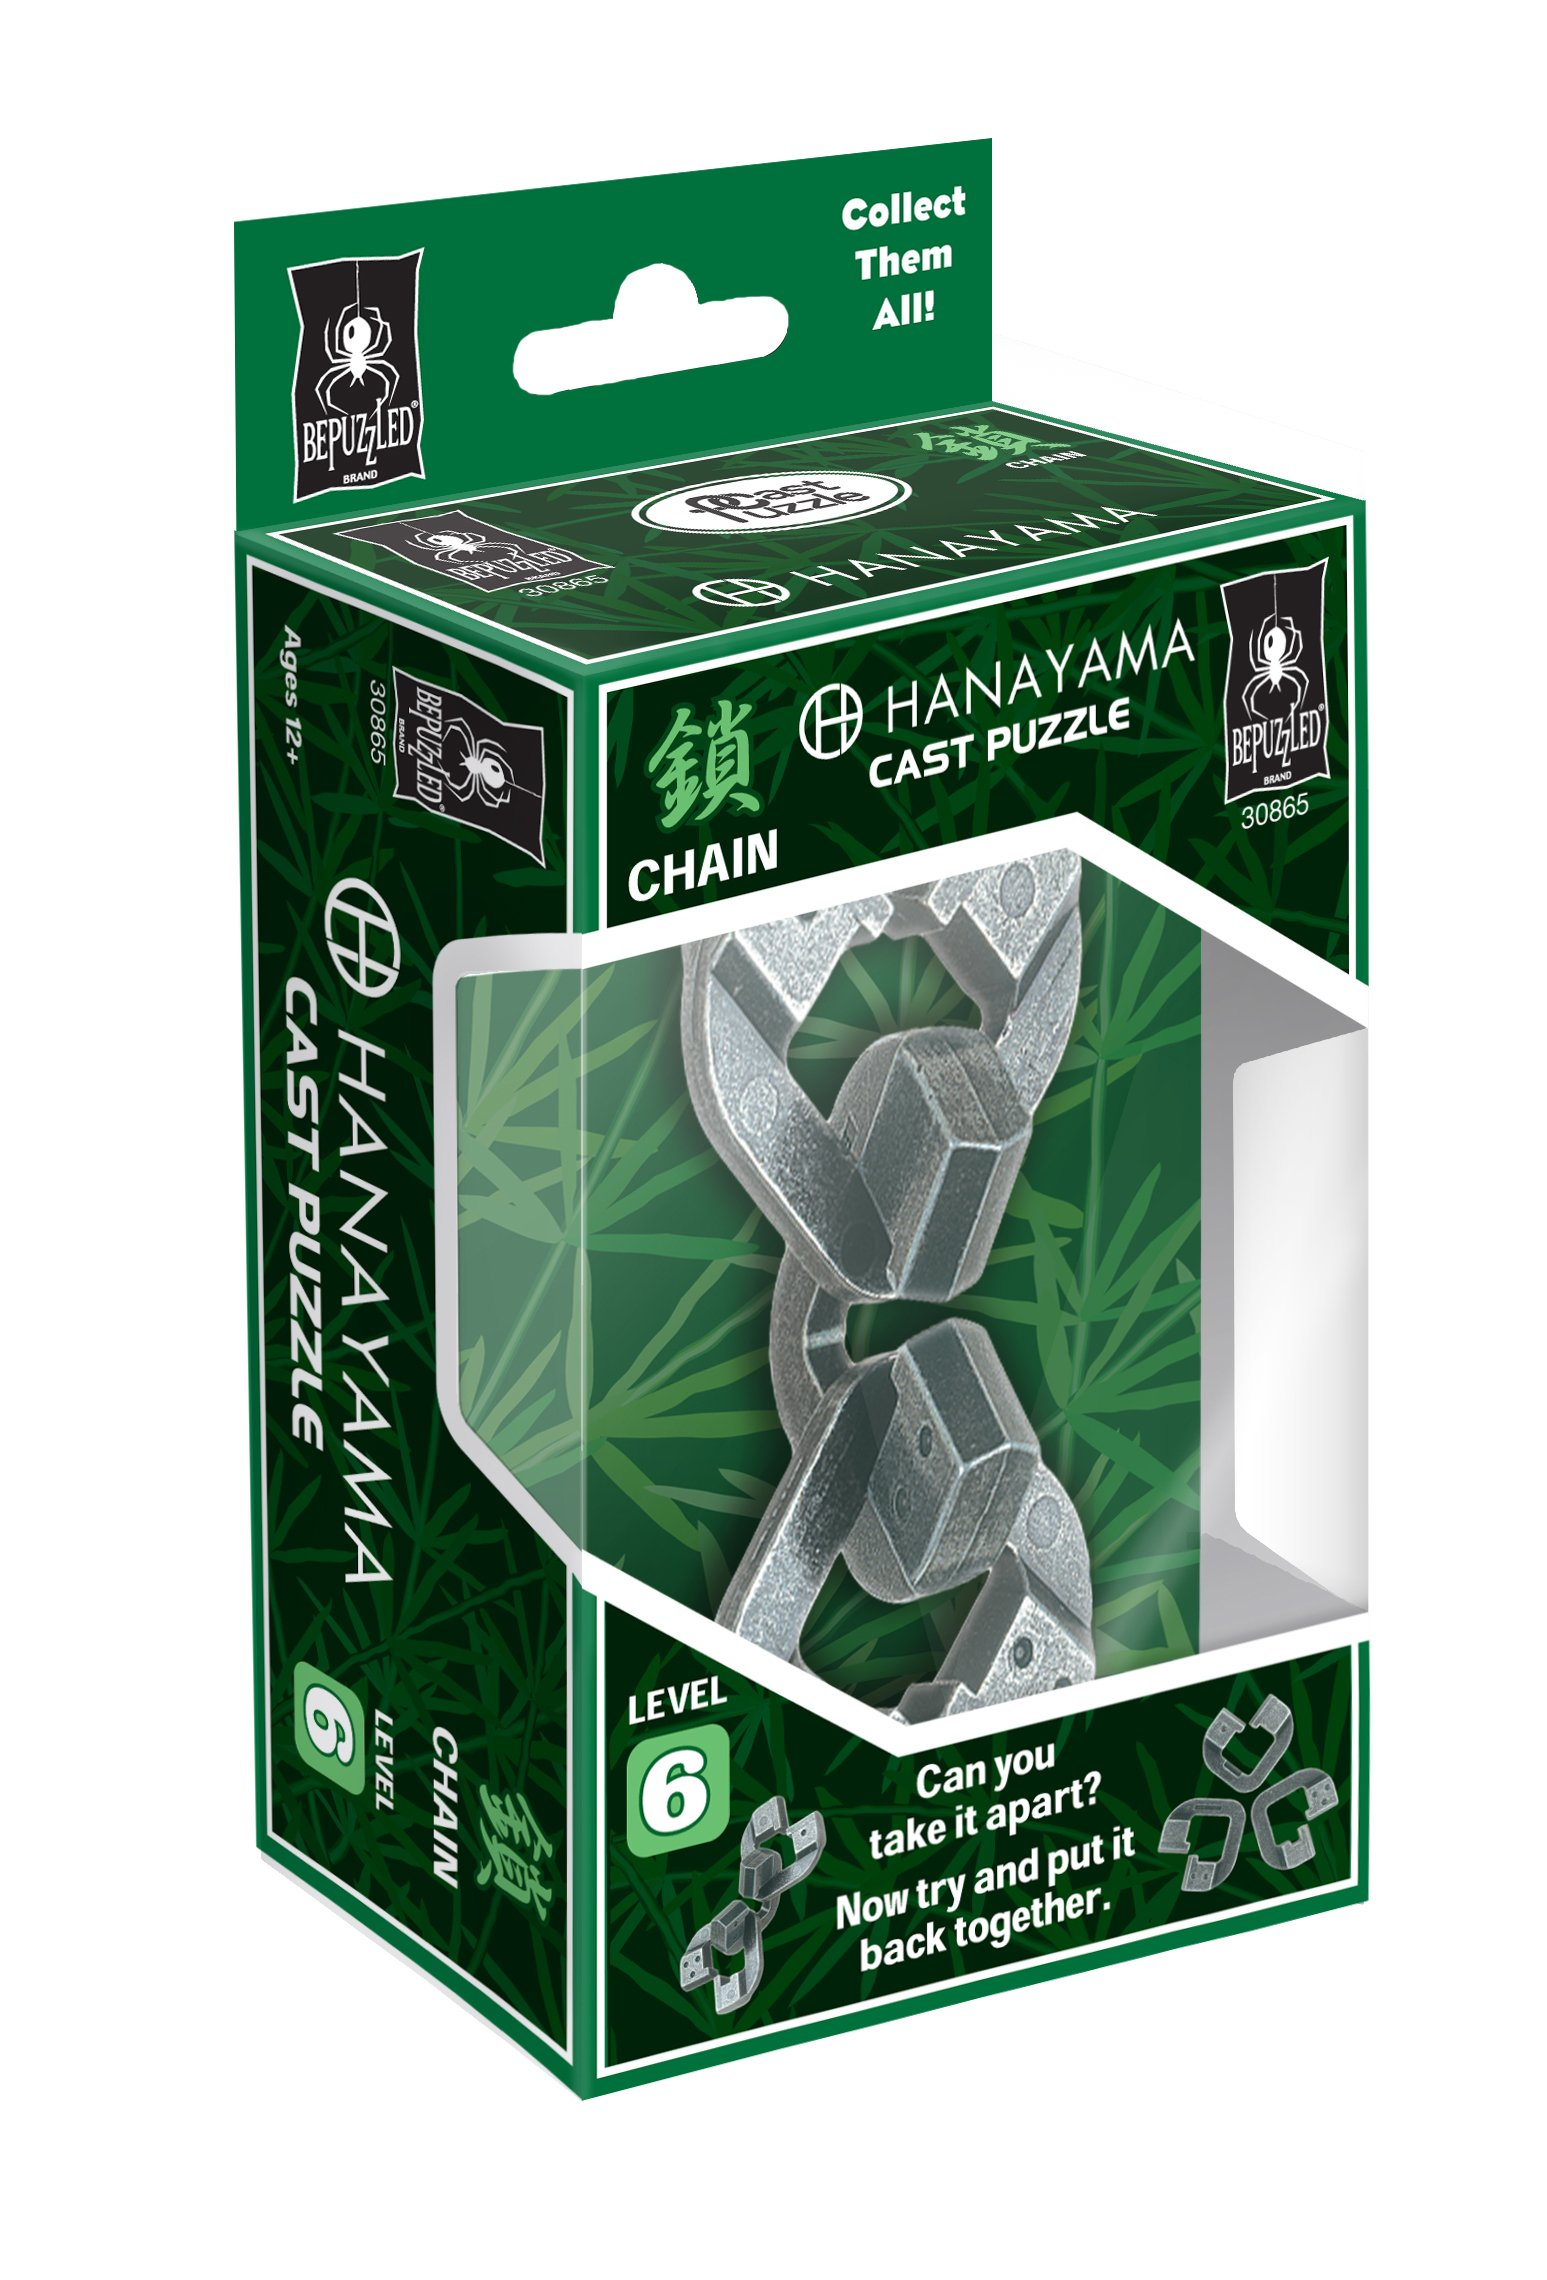 Bepuzzled CHAIN Hanayama Cast Metal Brain Teaser Puzzle (Level 6) Puzzles For Kids and Adults Ages 12 and Up by Bepuzzled